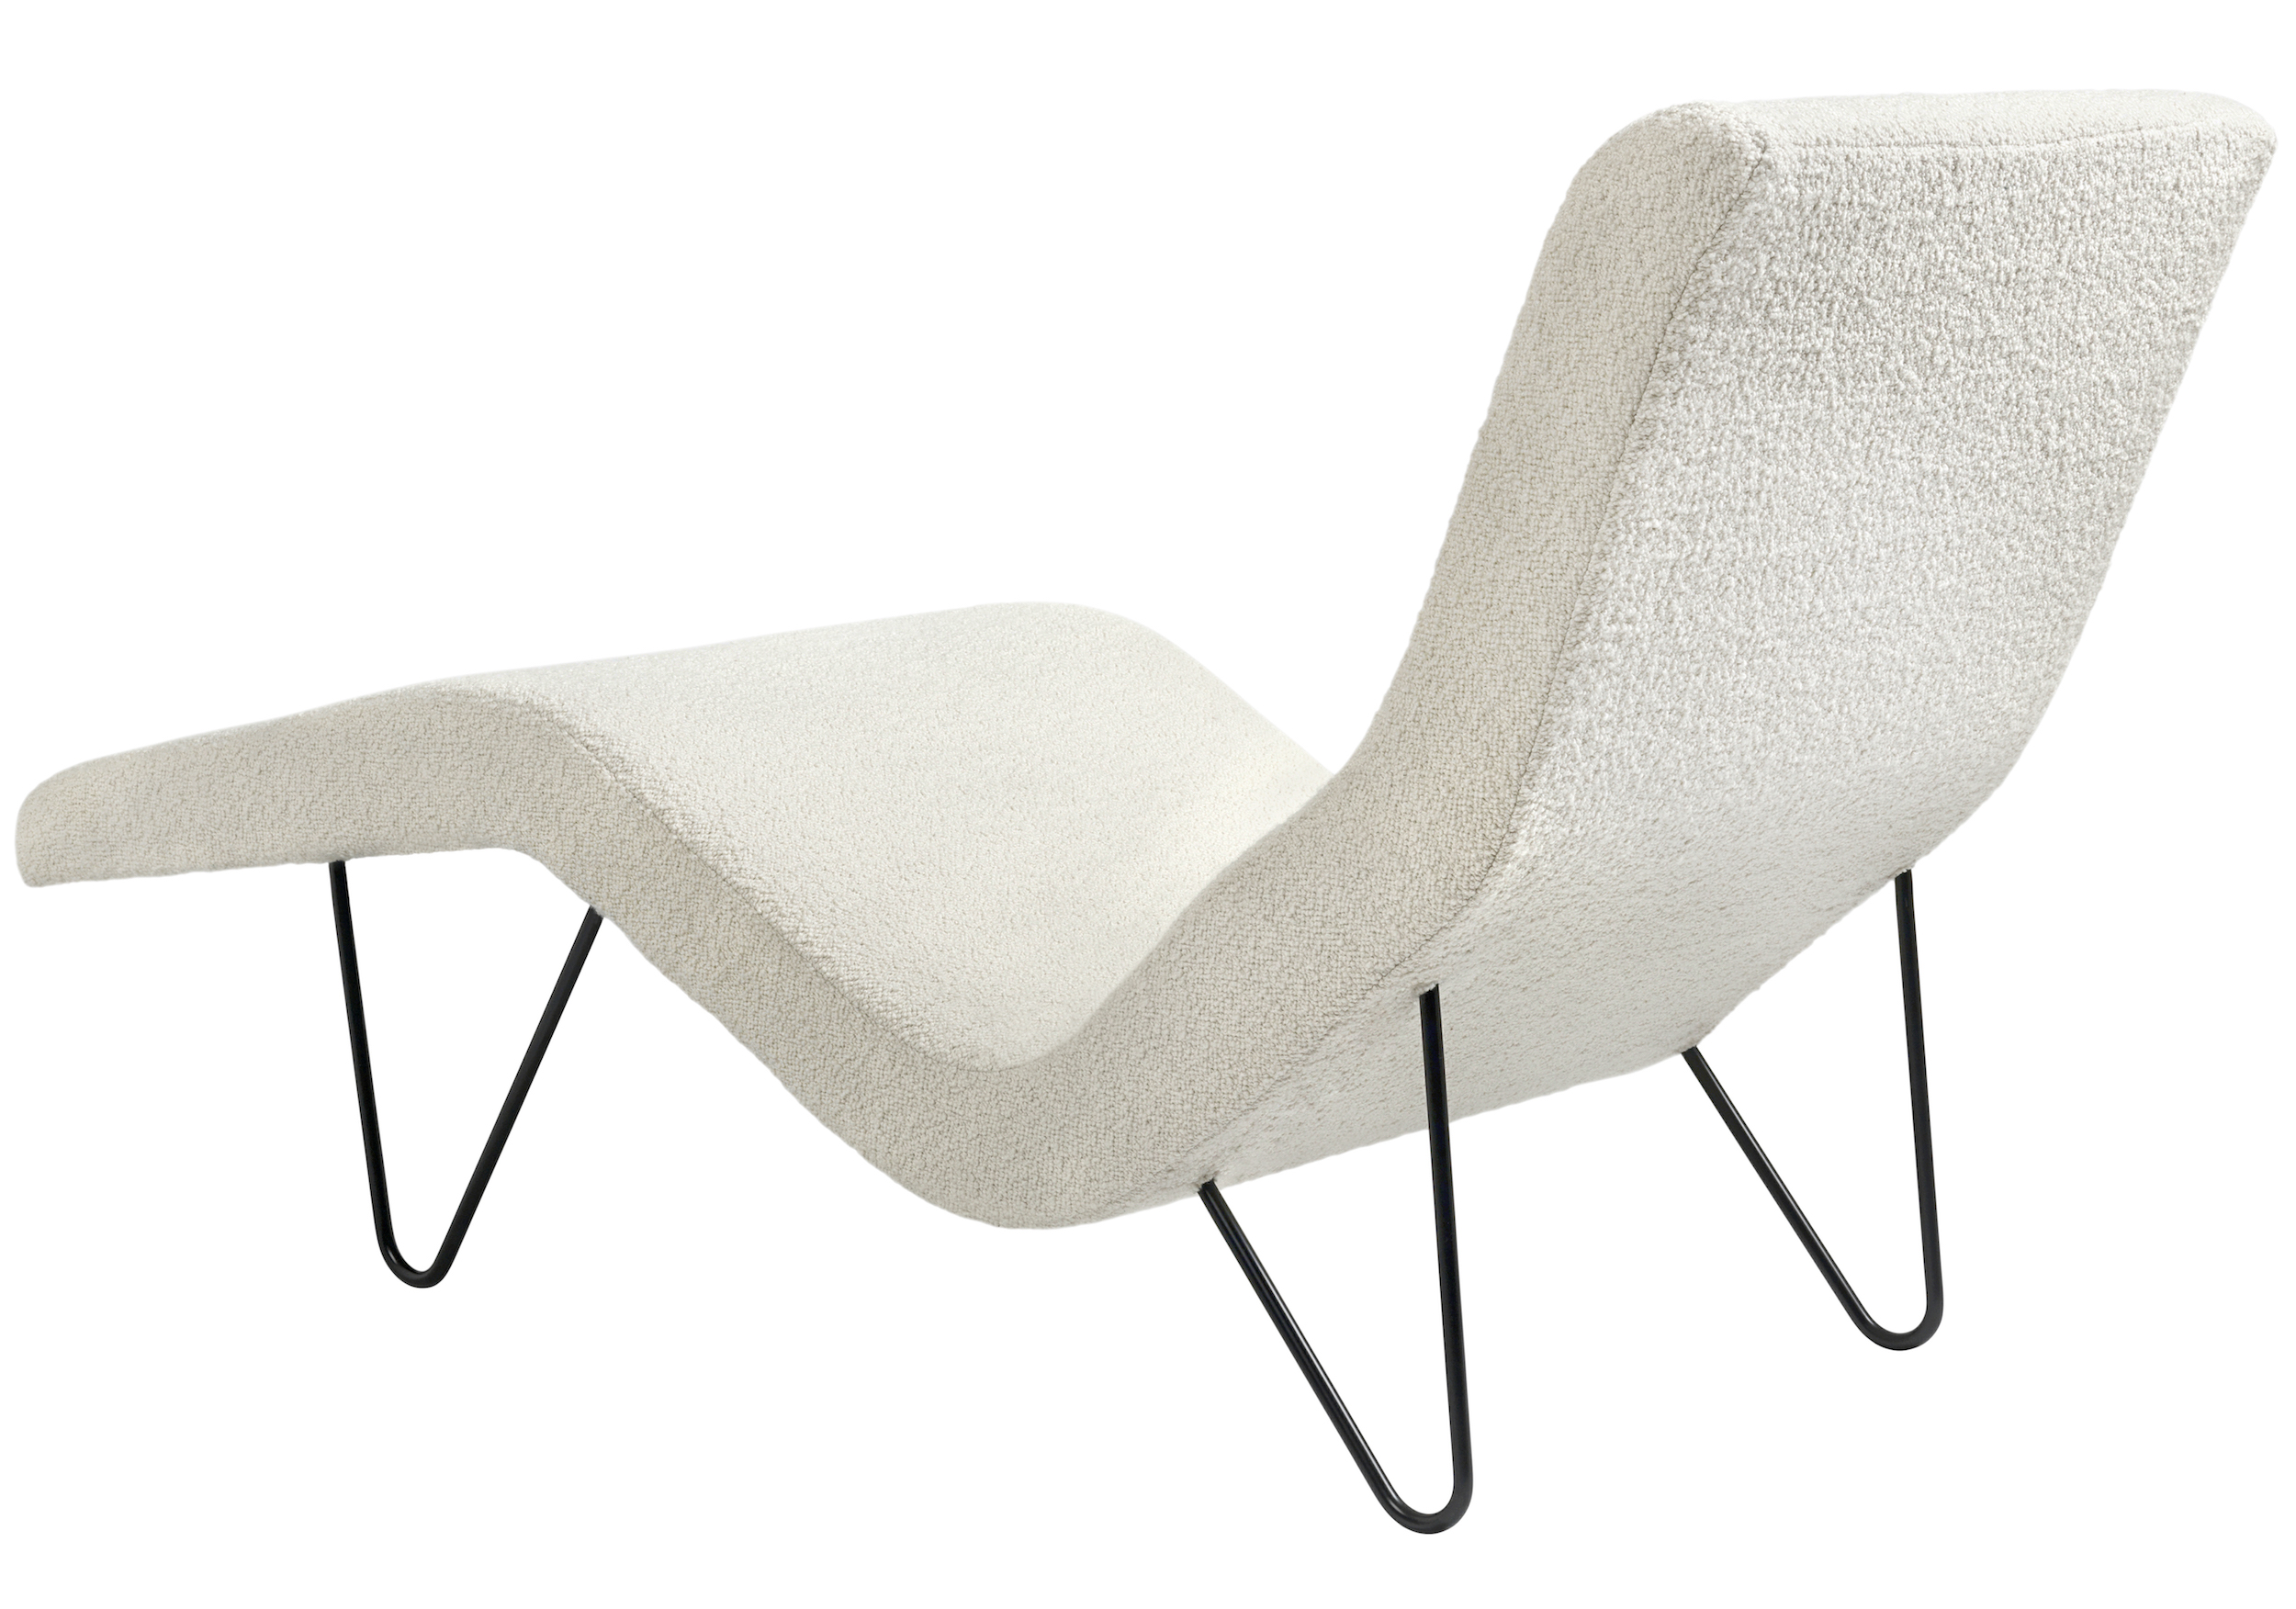 Ready Made GMG Chaise Longue